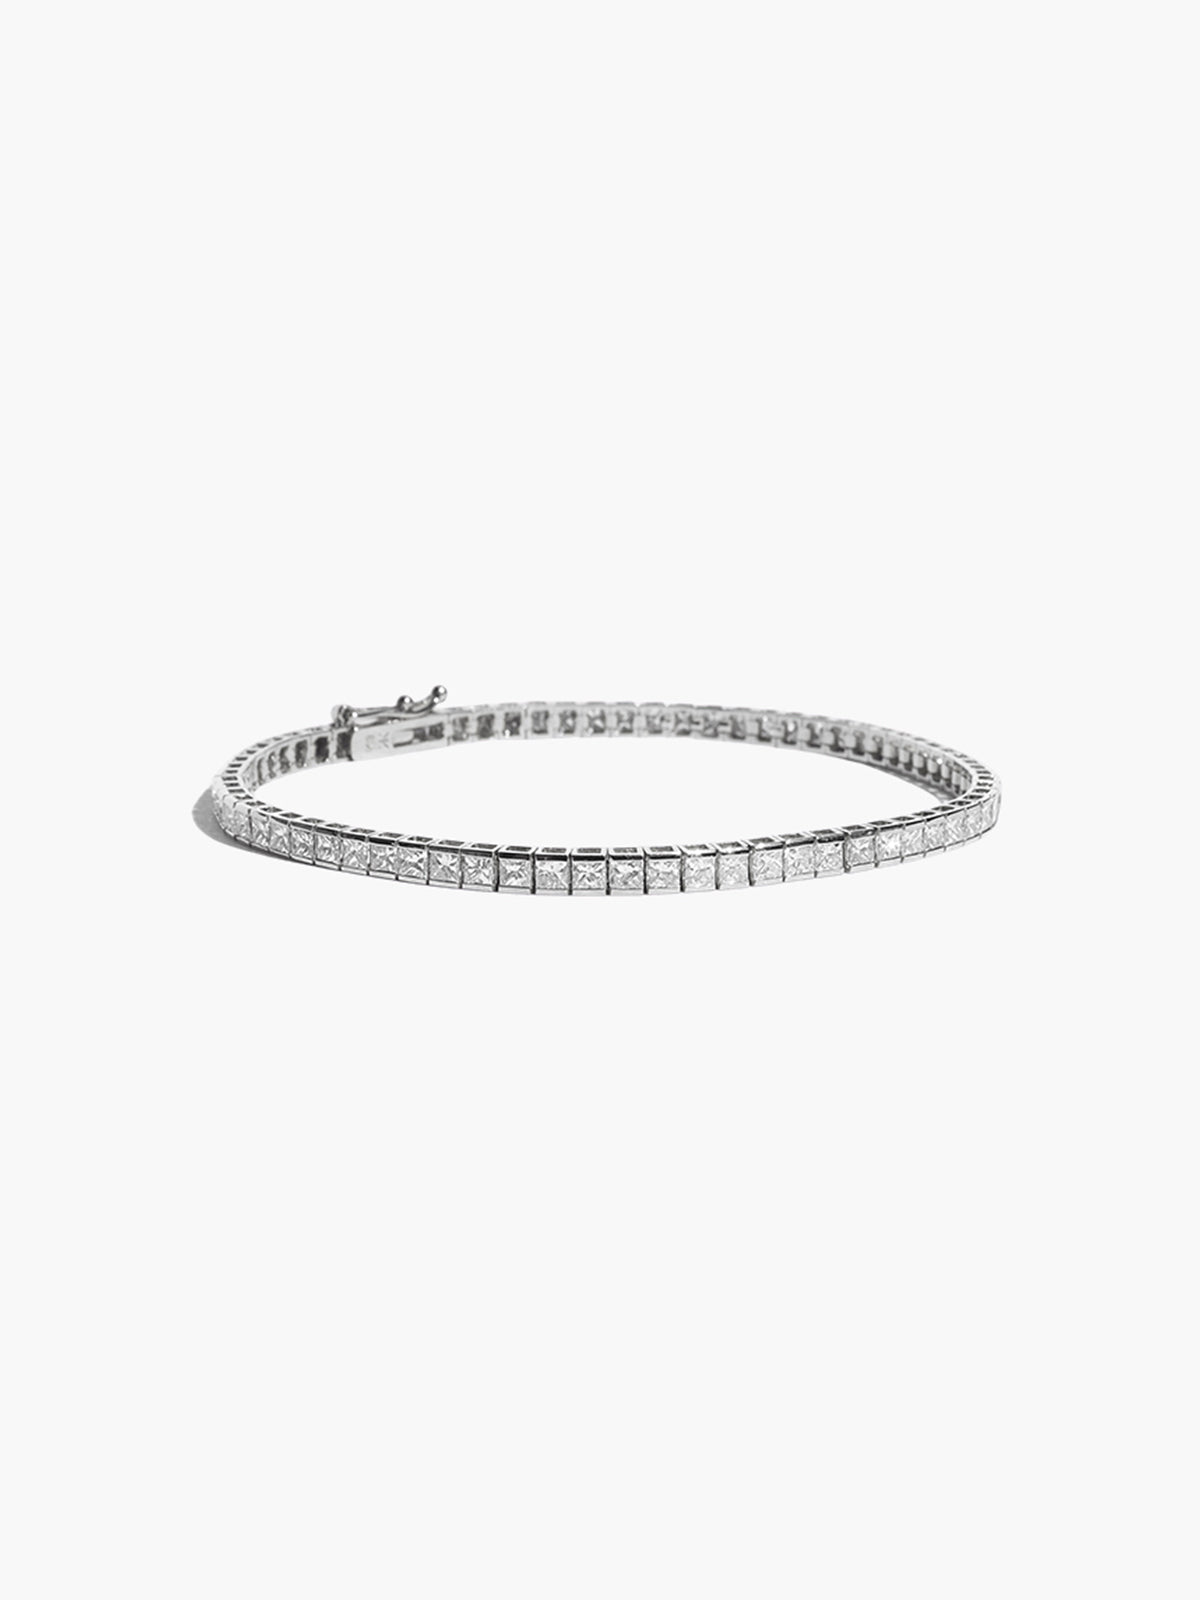 Diamond Eternity Bracelet | White Gold